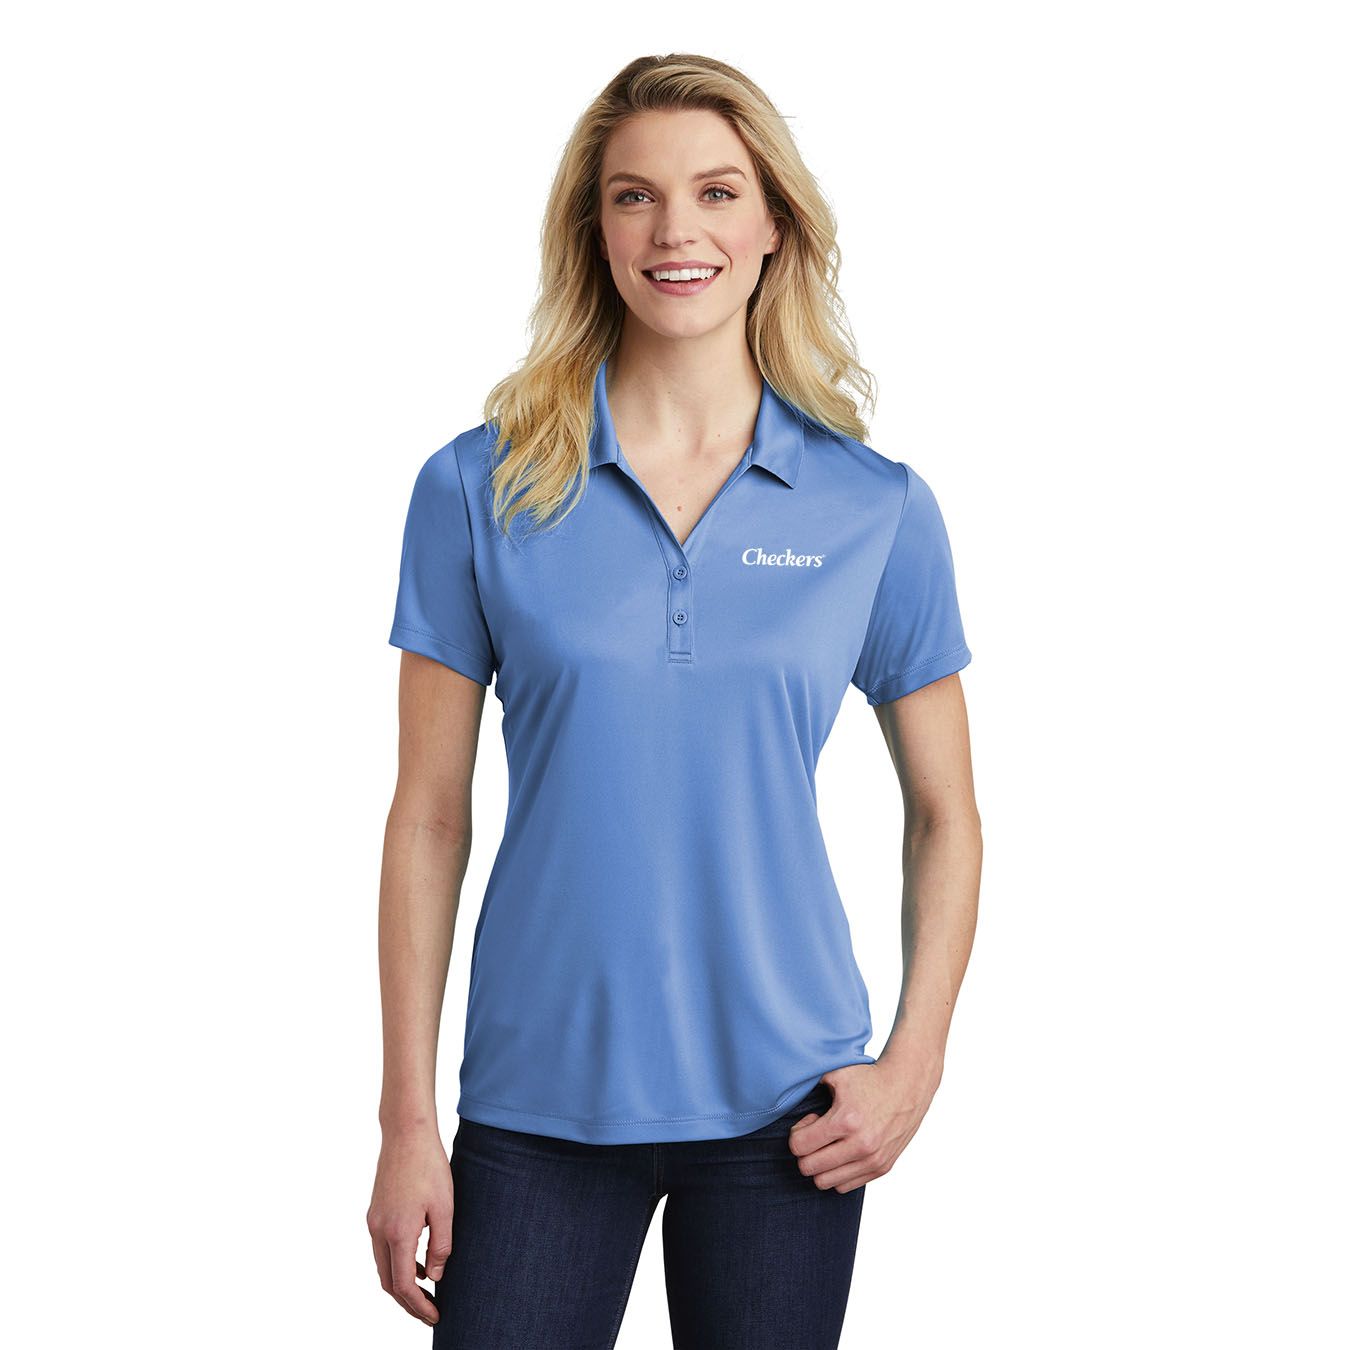 Sport Tek Ladies Posicharge Competitor Polo Find new and preloved sportek items at up to 70% off retail prices. sport tek ladies posicharge competitor polo